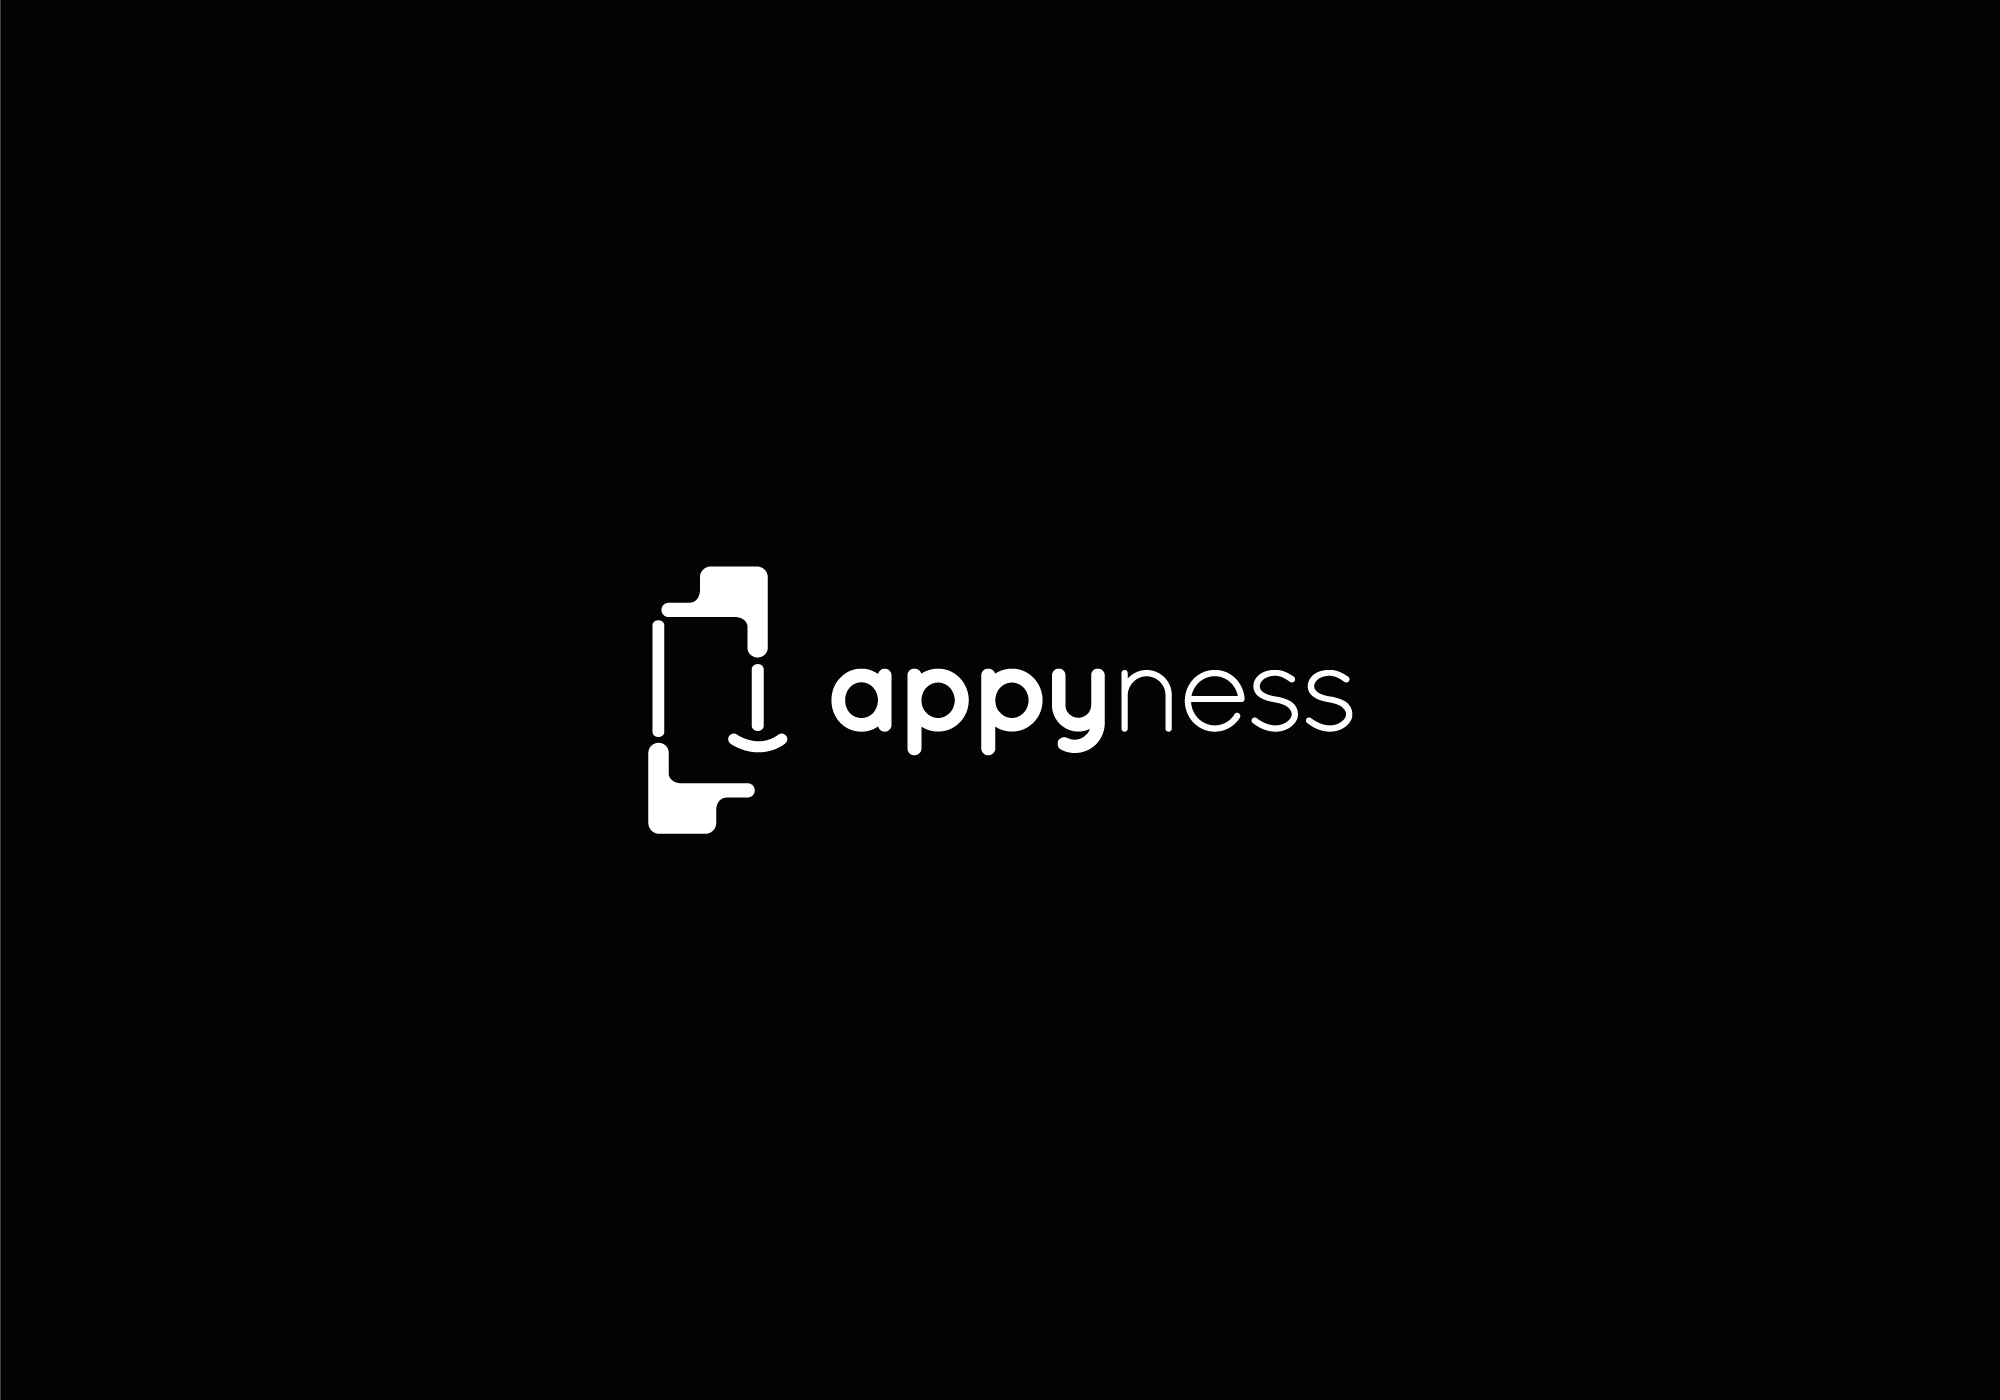 Appyness